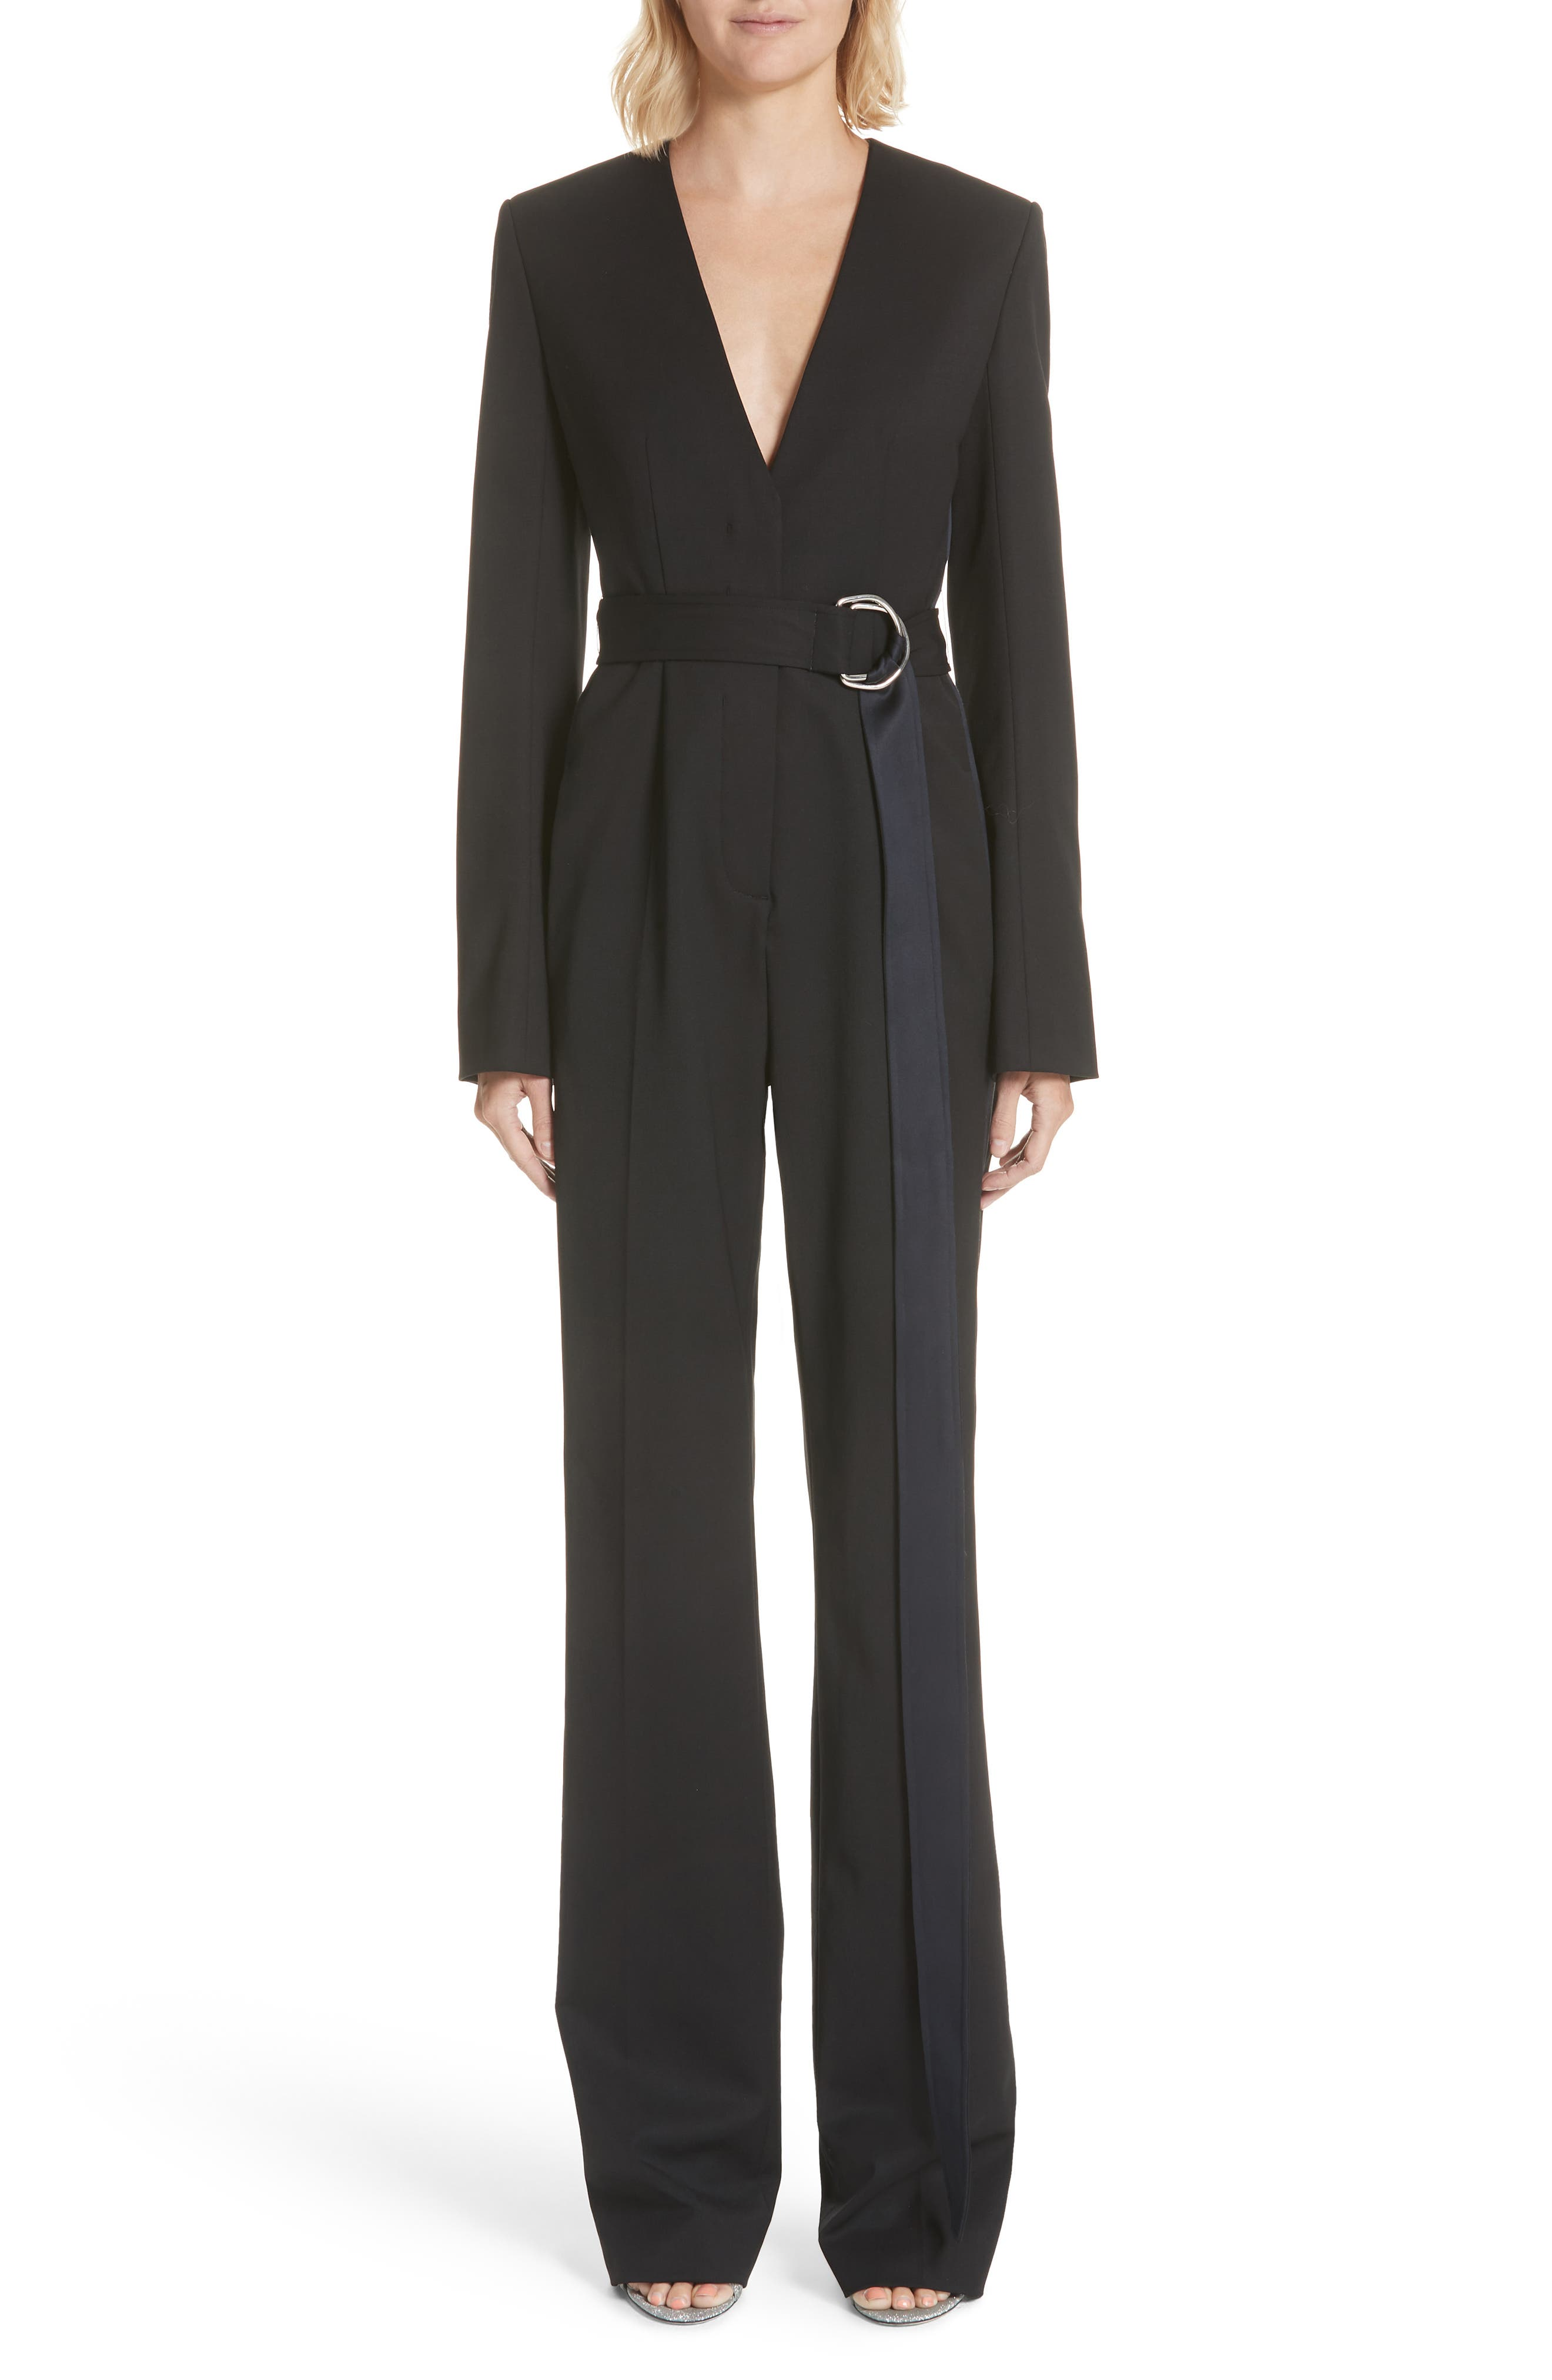 CALVIN KLEIN 205W39NYC Side Stripe Wool Blend Jumpsuit, Main, color, BLACK DARK NAVY